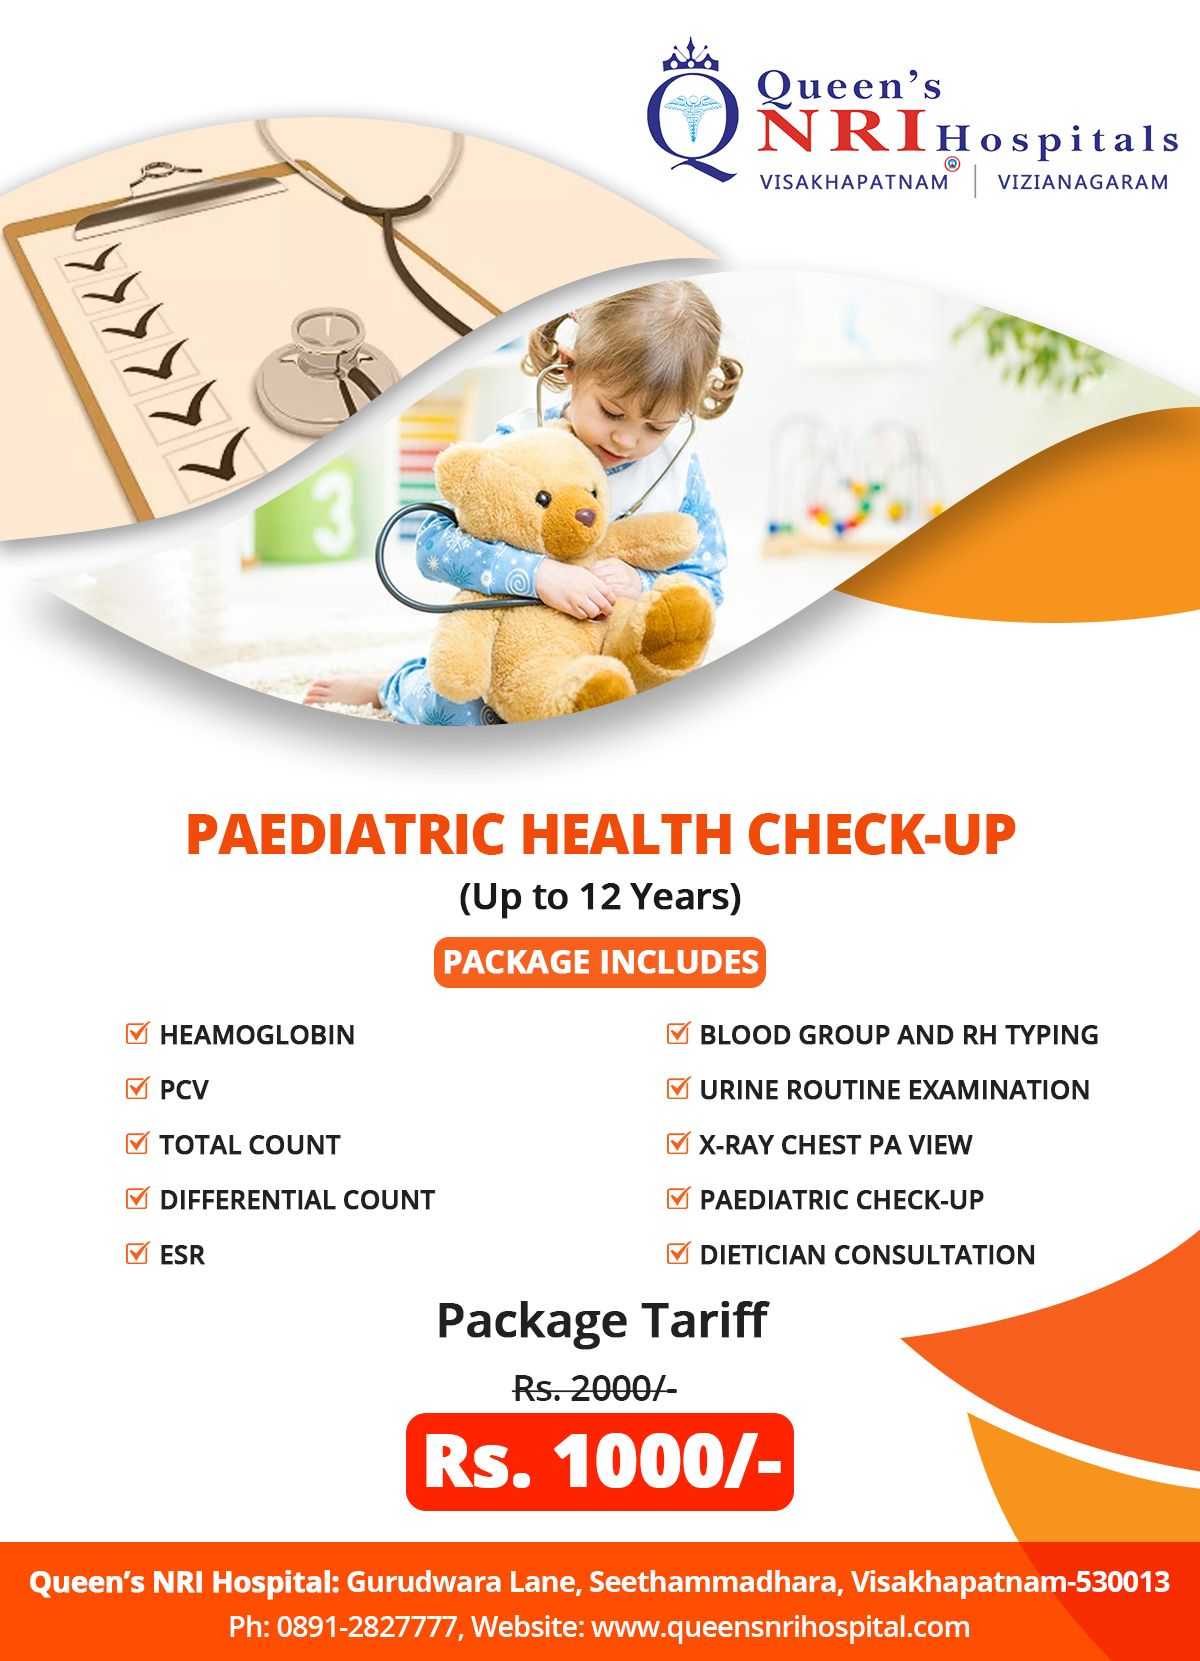 Pediatric Health Check-up Package (up to 12 Years) Package